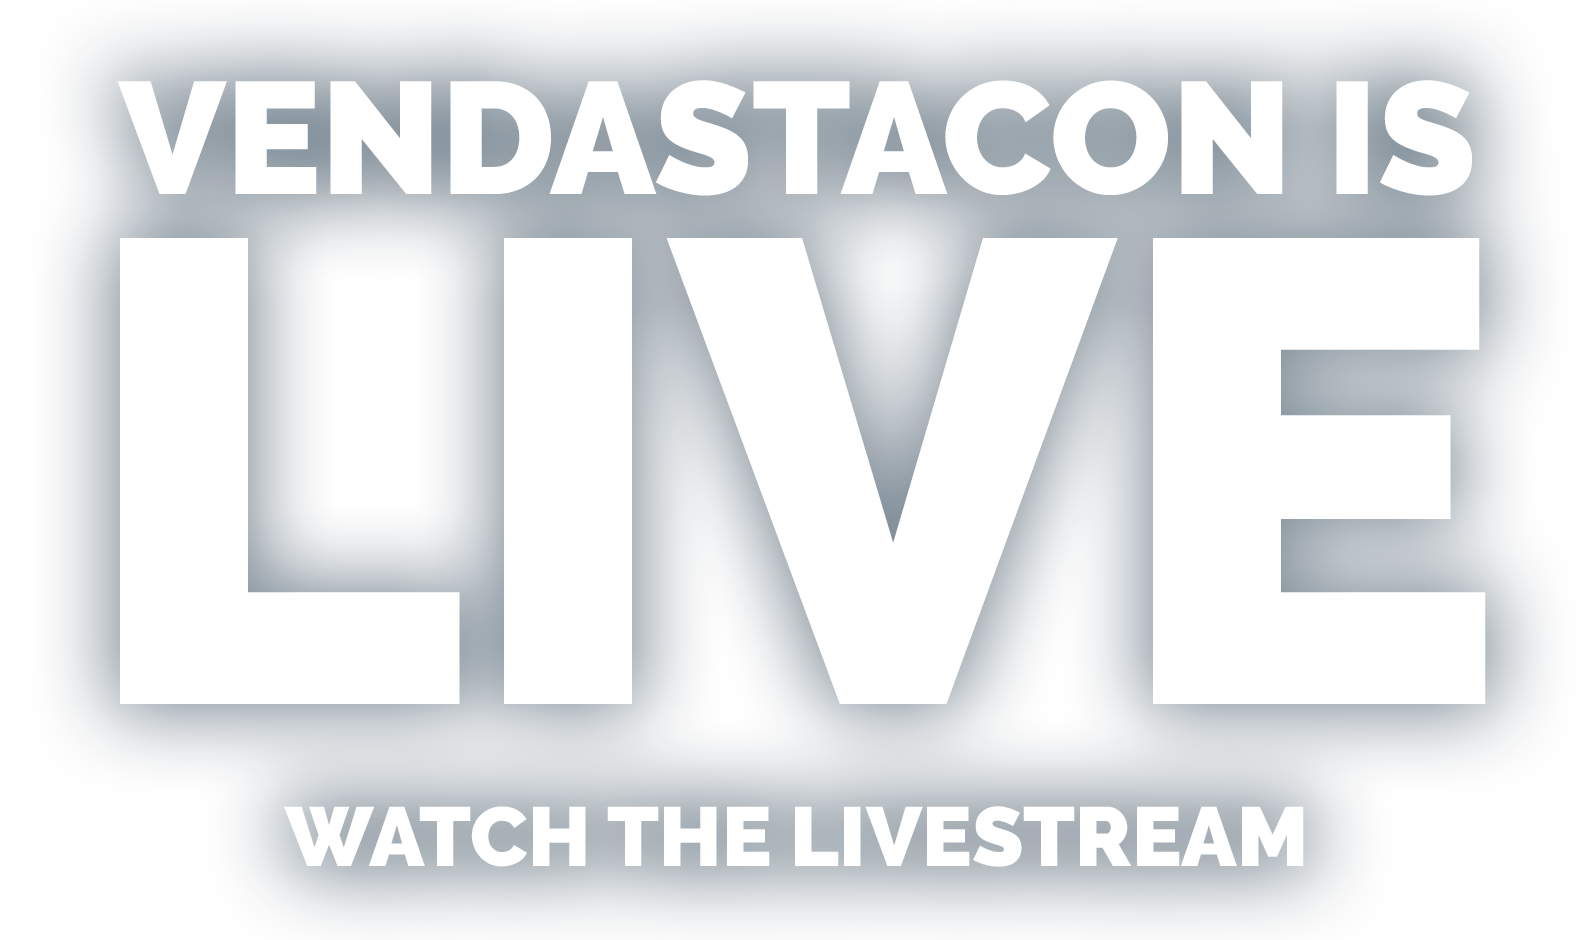 VENDASTACON IS LIVE | WATCH THE LIVESTREAM